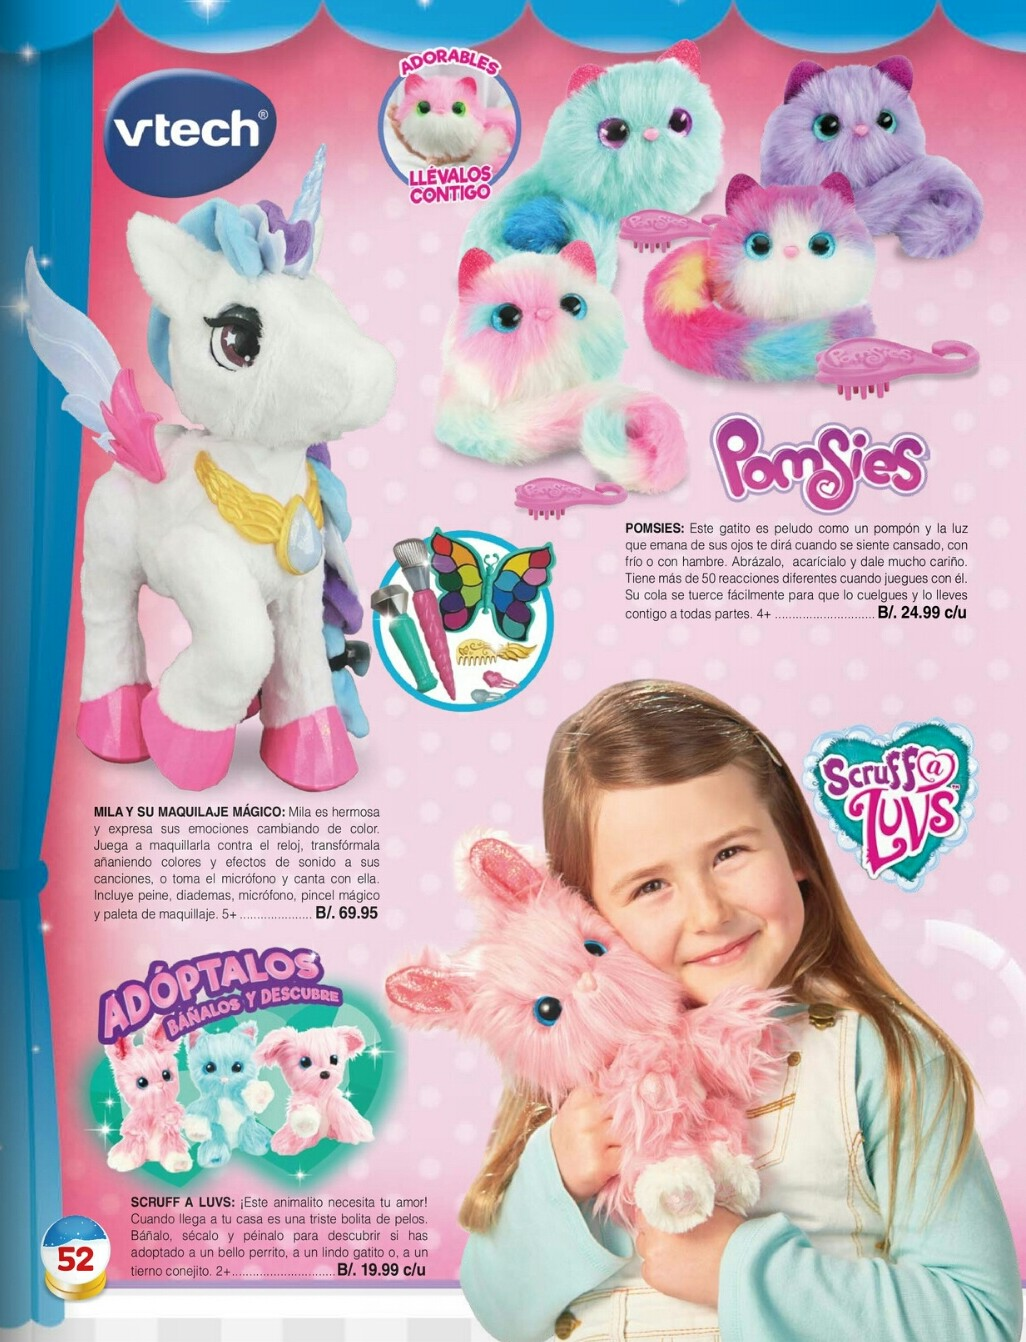 Catalogo juguetes Stivie toys 2018 p52